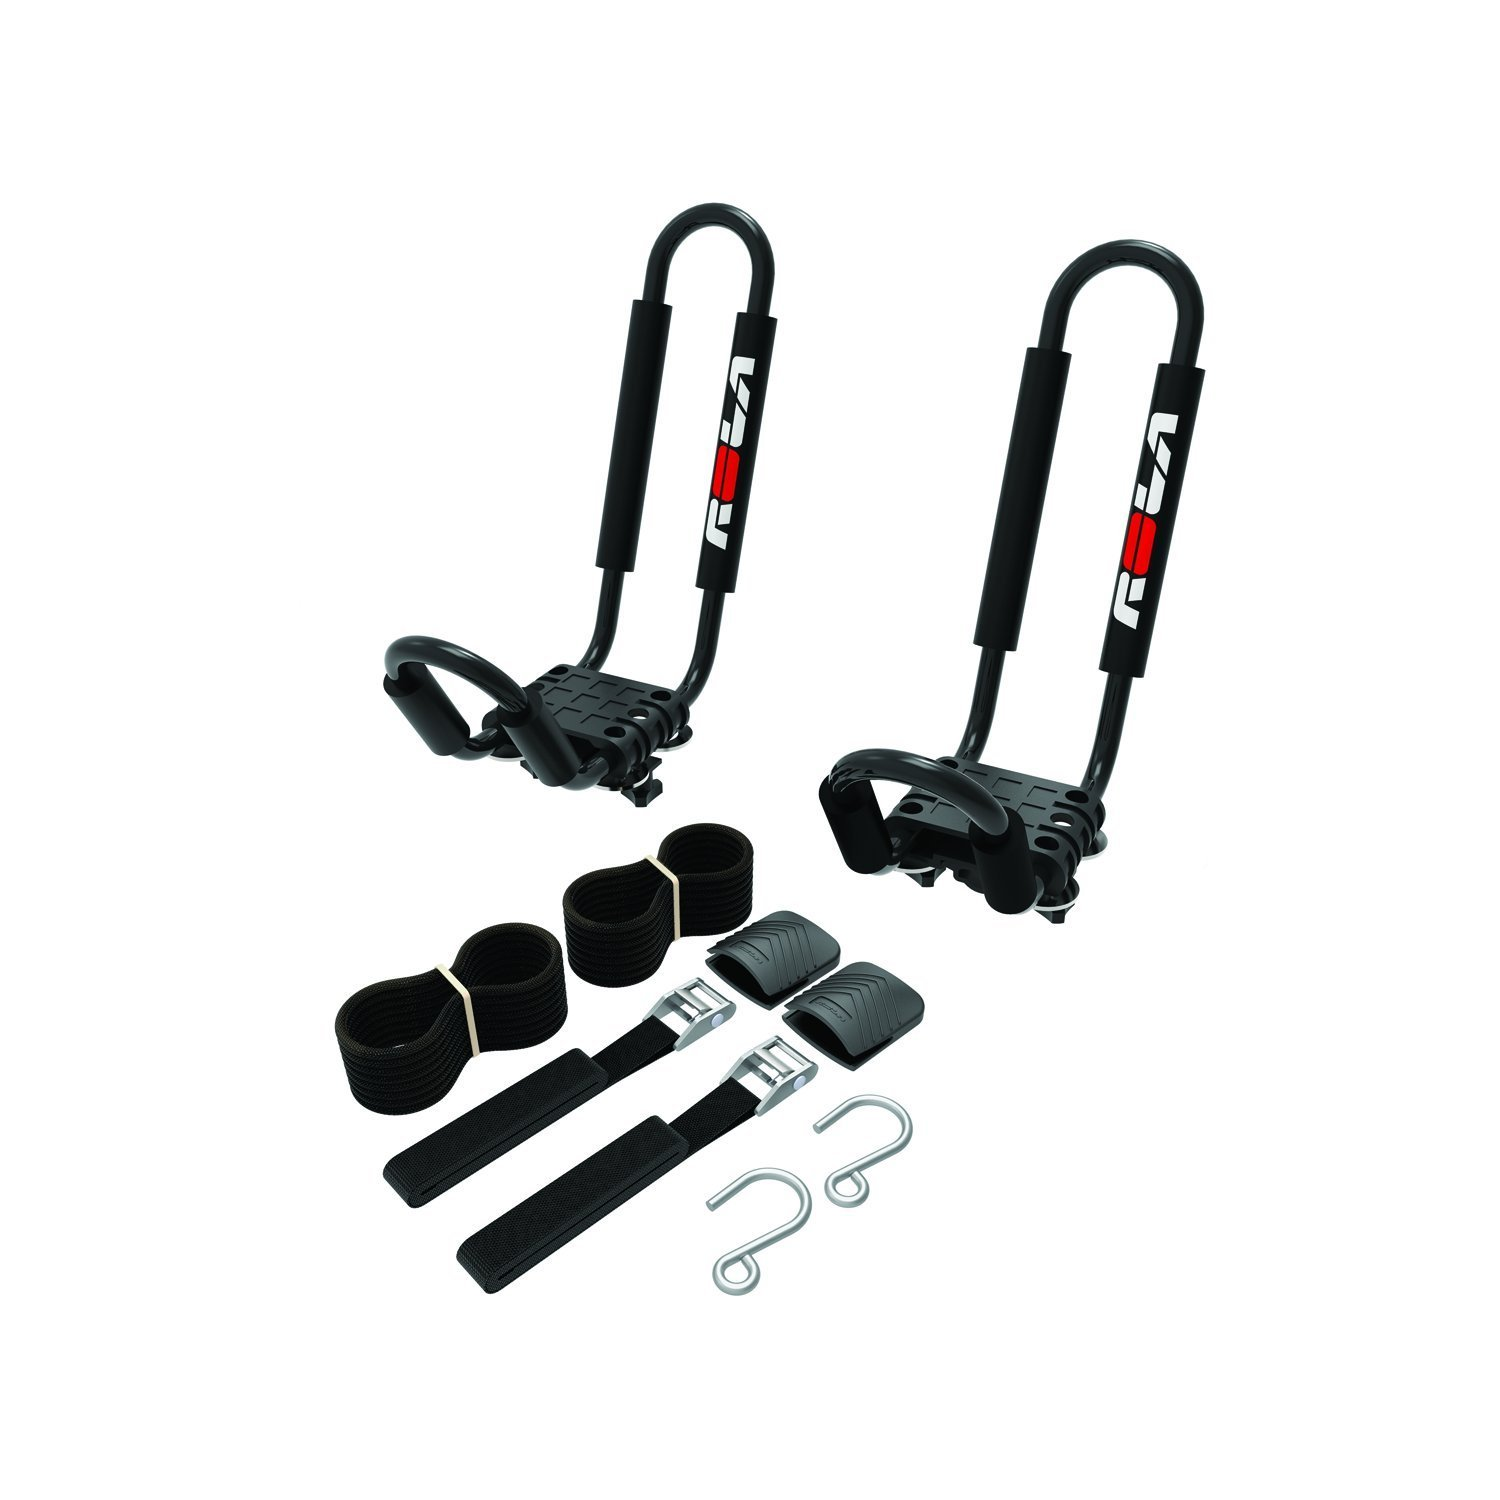 ROLA (59912) J Style Kayak Carrier